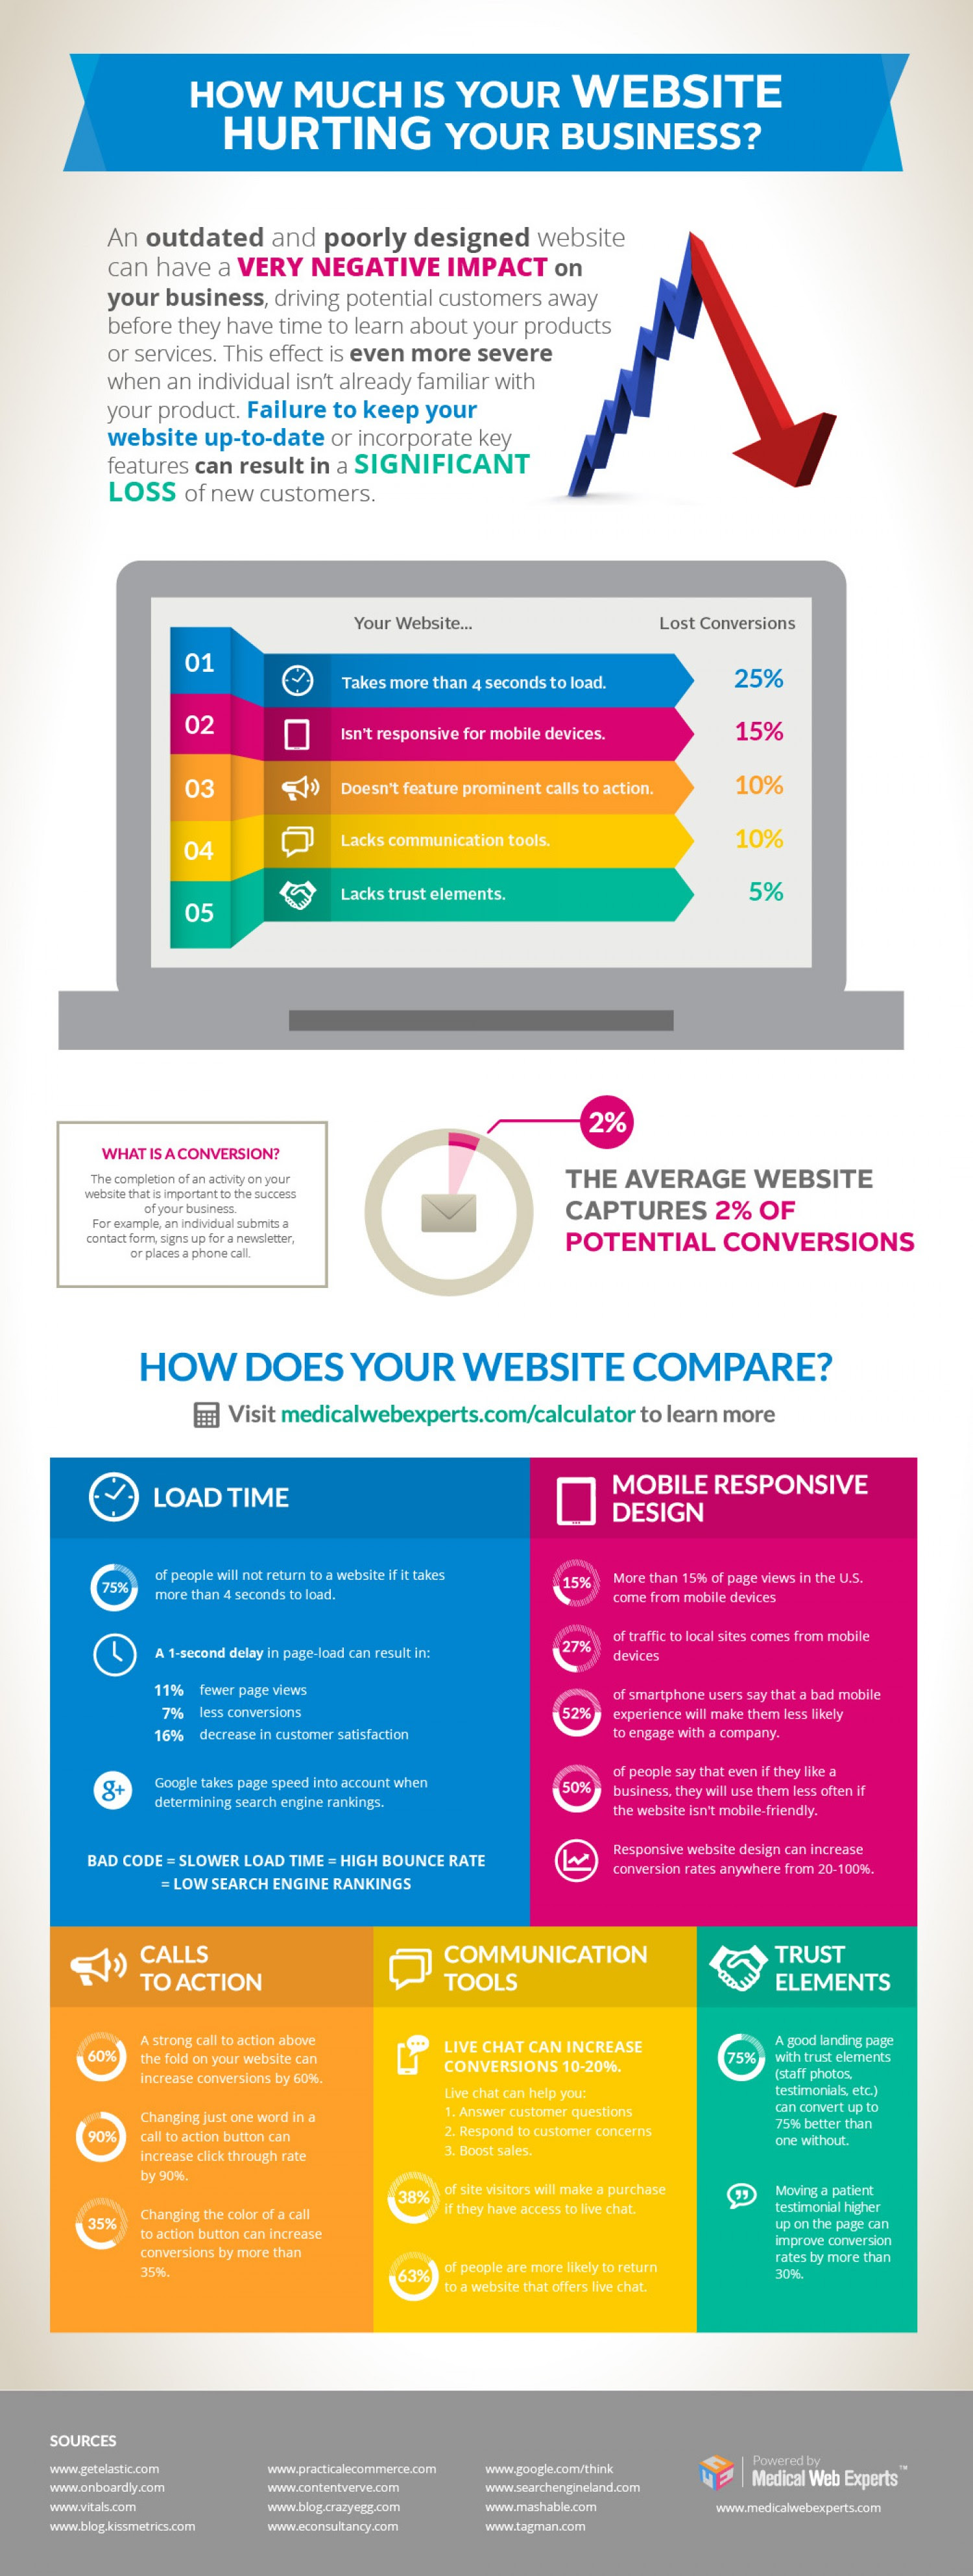 INFOGRAPHIC: How Much Is Your Website Hurting Your Business?